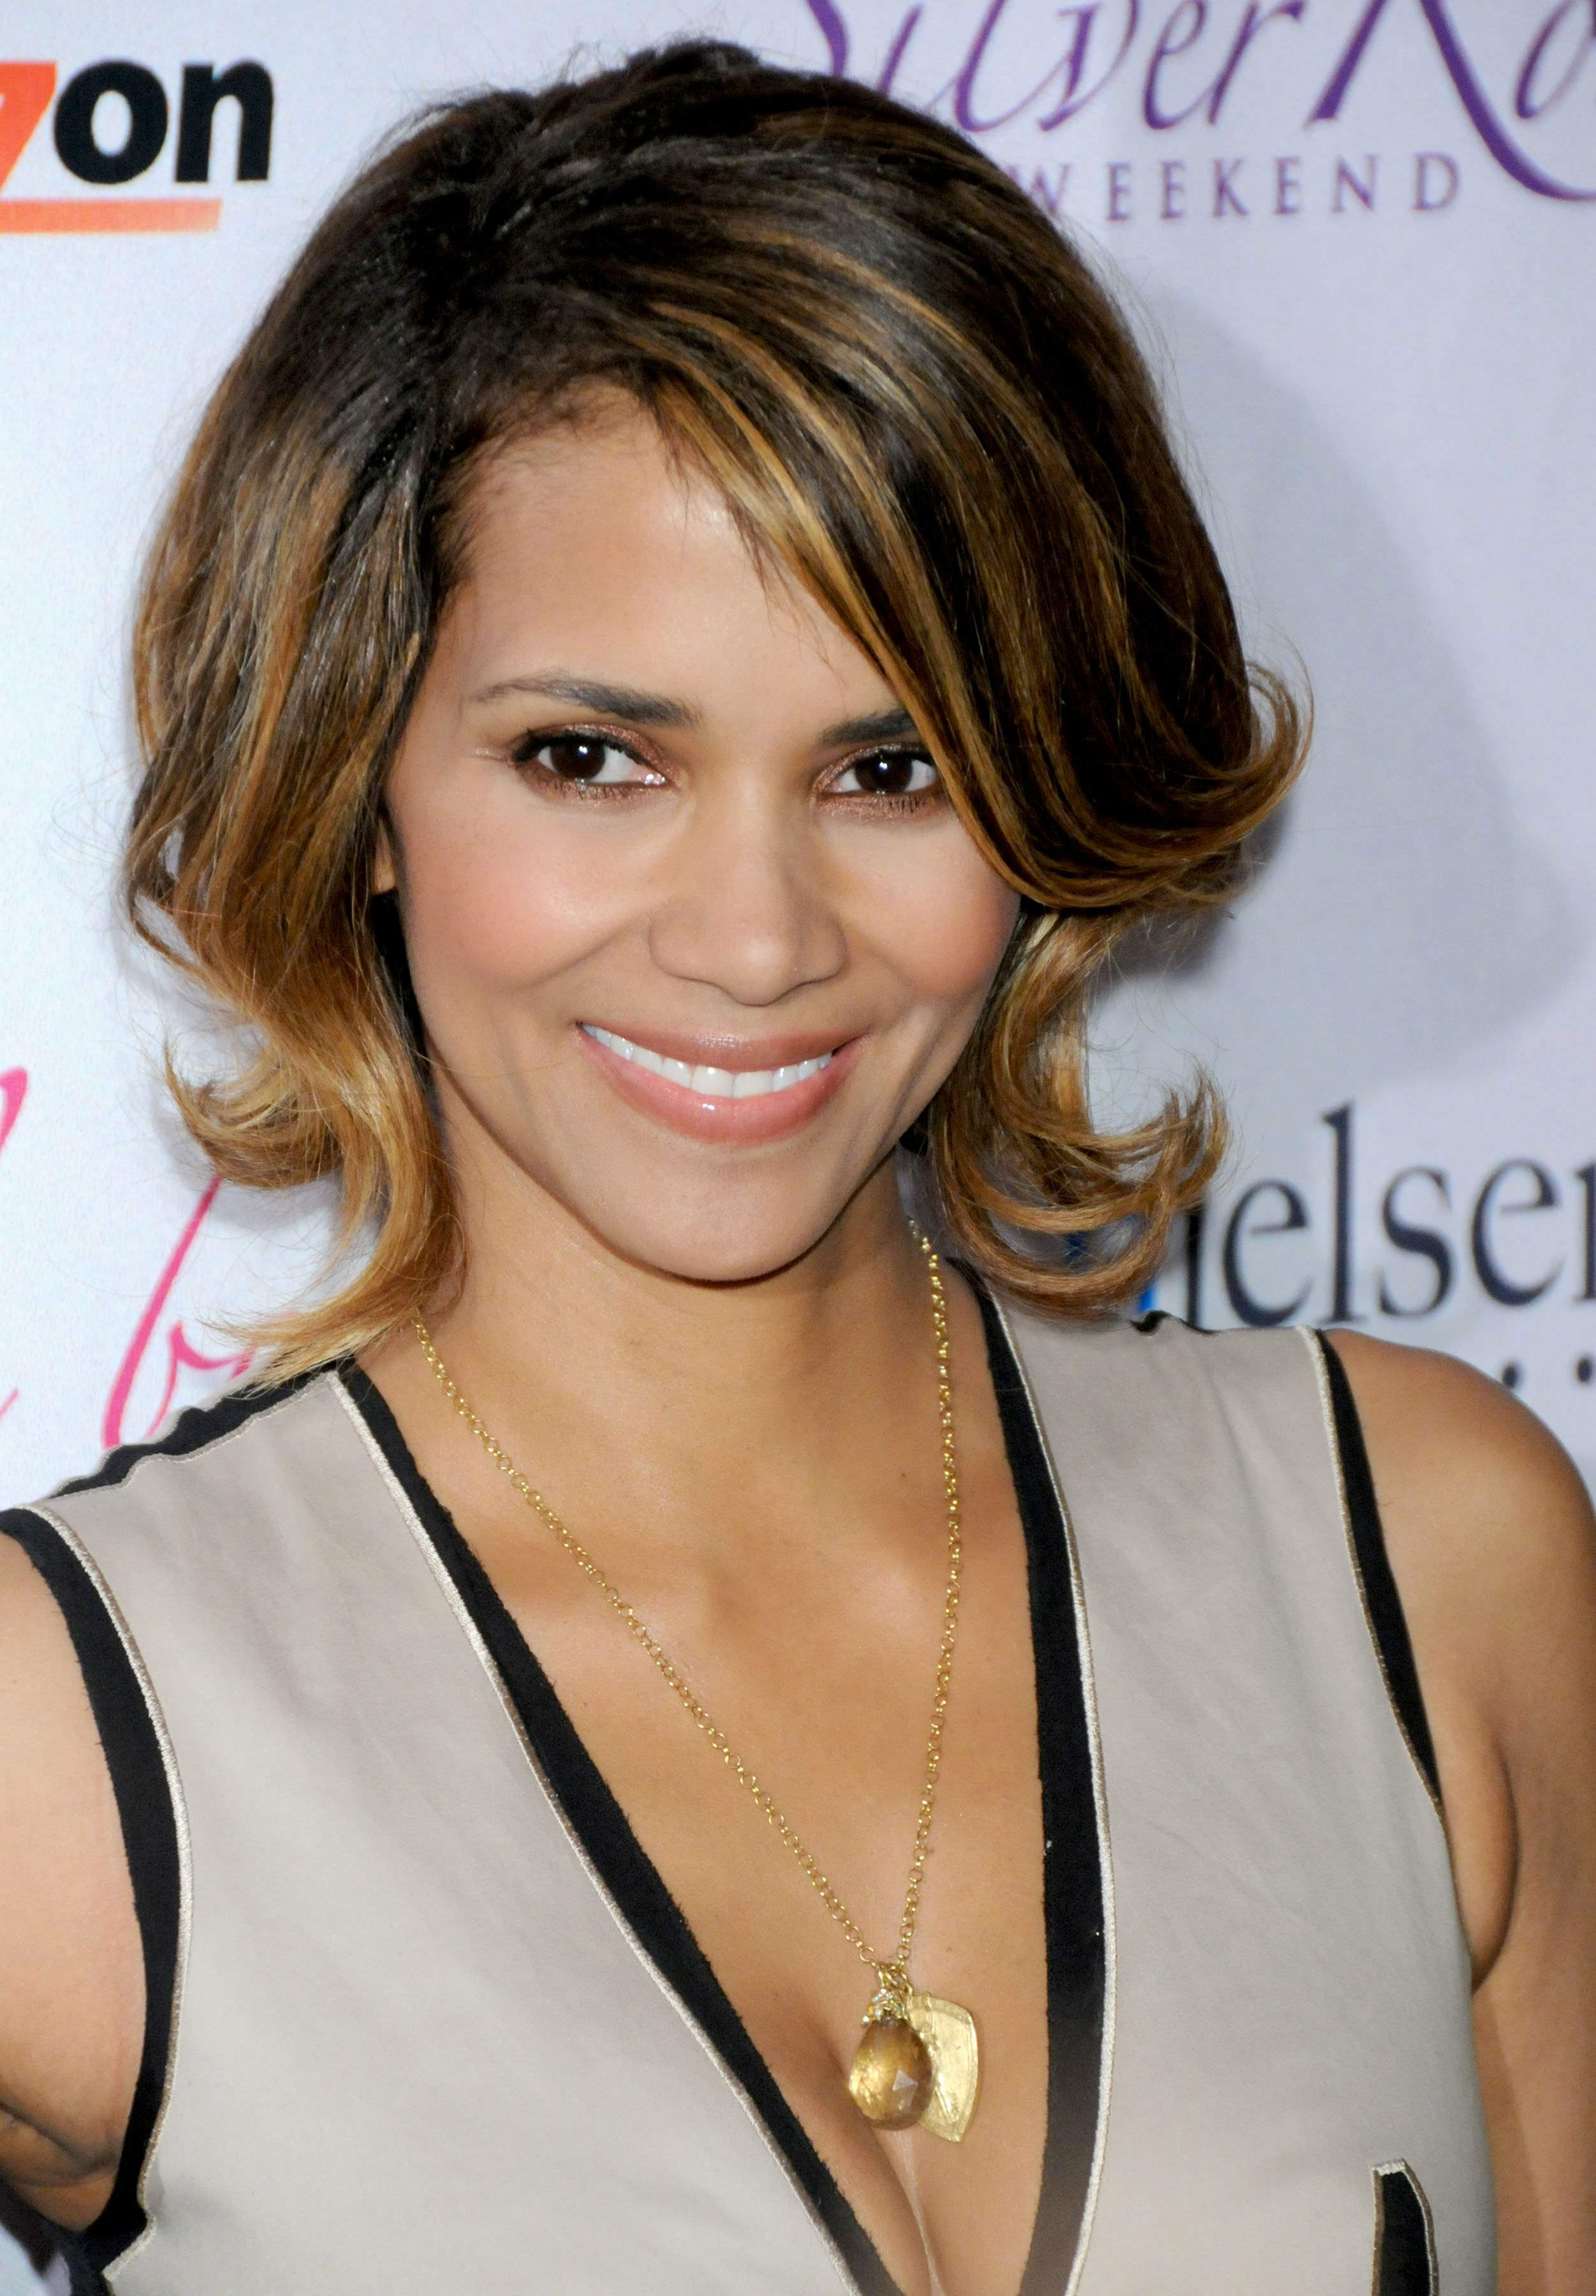 59825_Halle_Berry_2009_Jenesse_Silver_Rose_Gala_Auction_in_Beverly_Hills_45_122_162lo.jpg